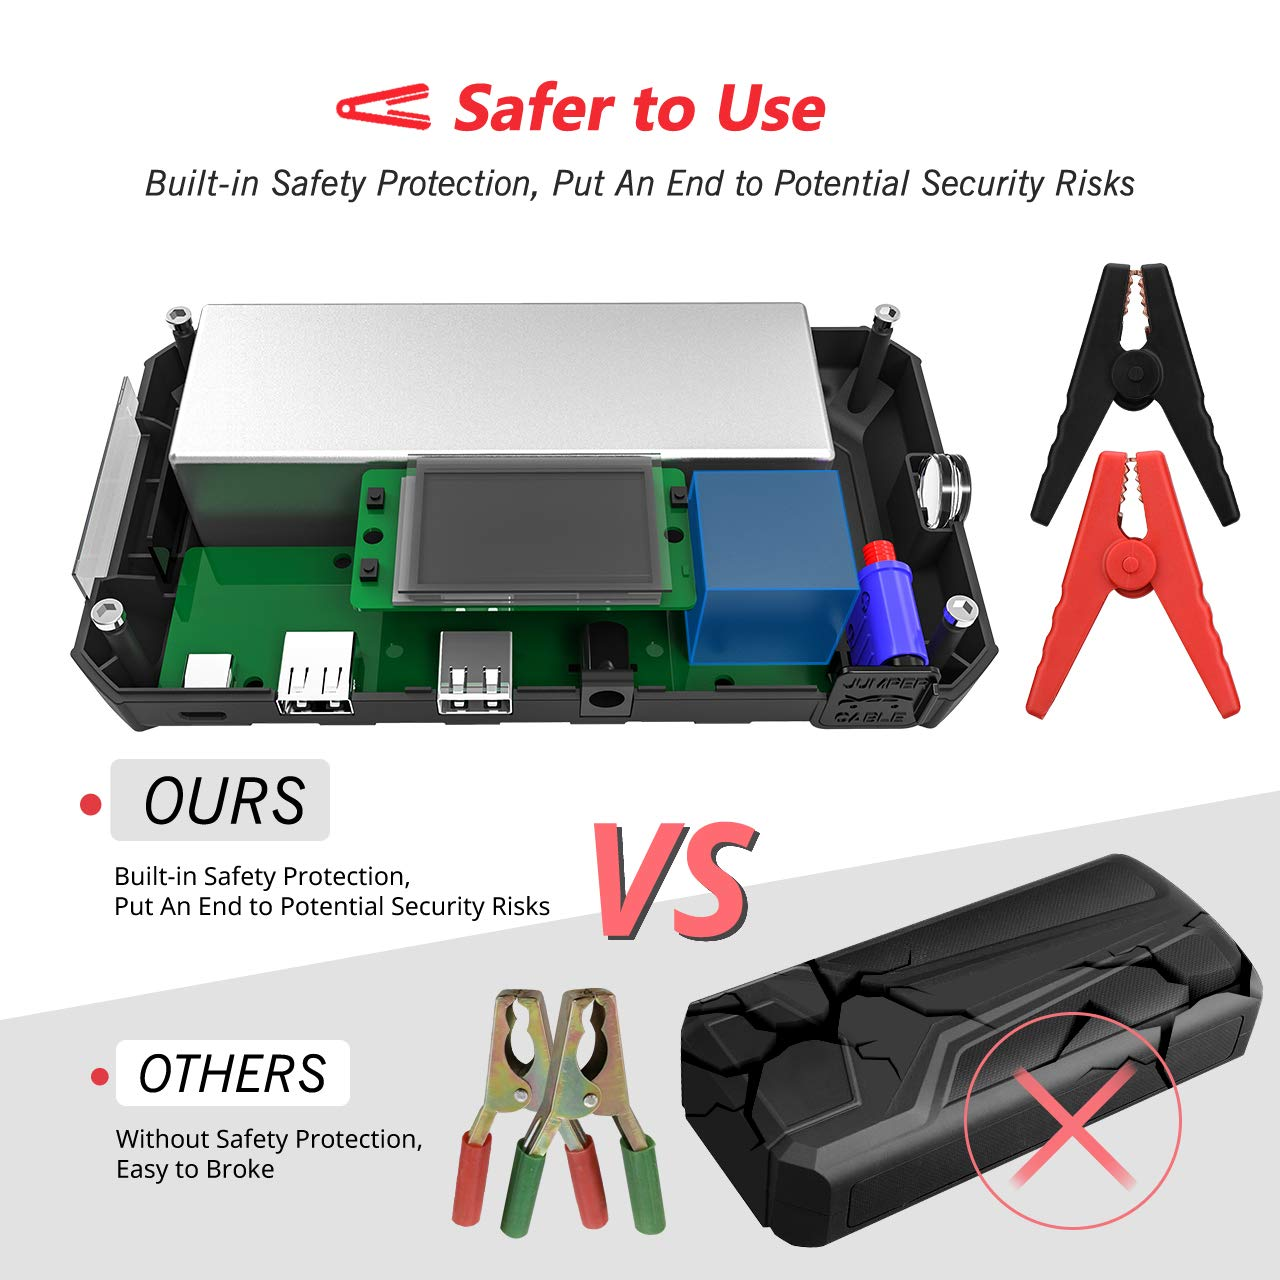 VicTsing Portable Car Jump Starter 1000A Peak 20800mAh (Up to 8.0L Gas, 6.0L Diesel Engine), 12V Auto Battery Booster,5 in 1 Compact Power Pack with QC3.0 Output, Built-in Compass and LED Light by VicTsing (Image #5)